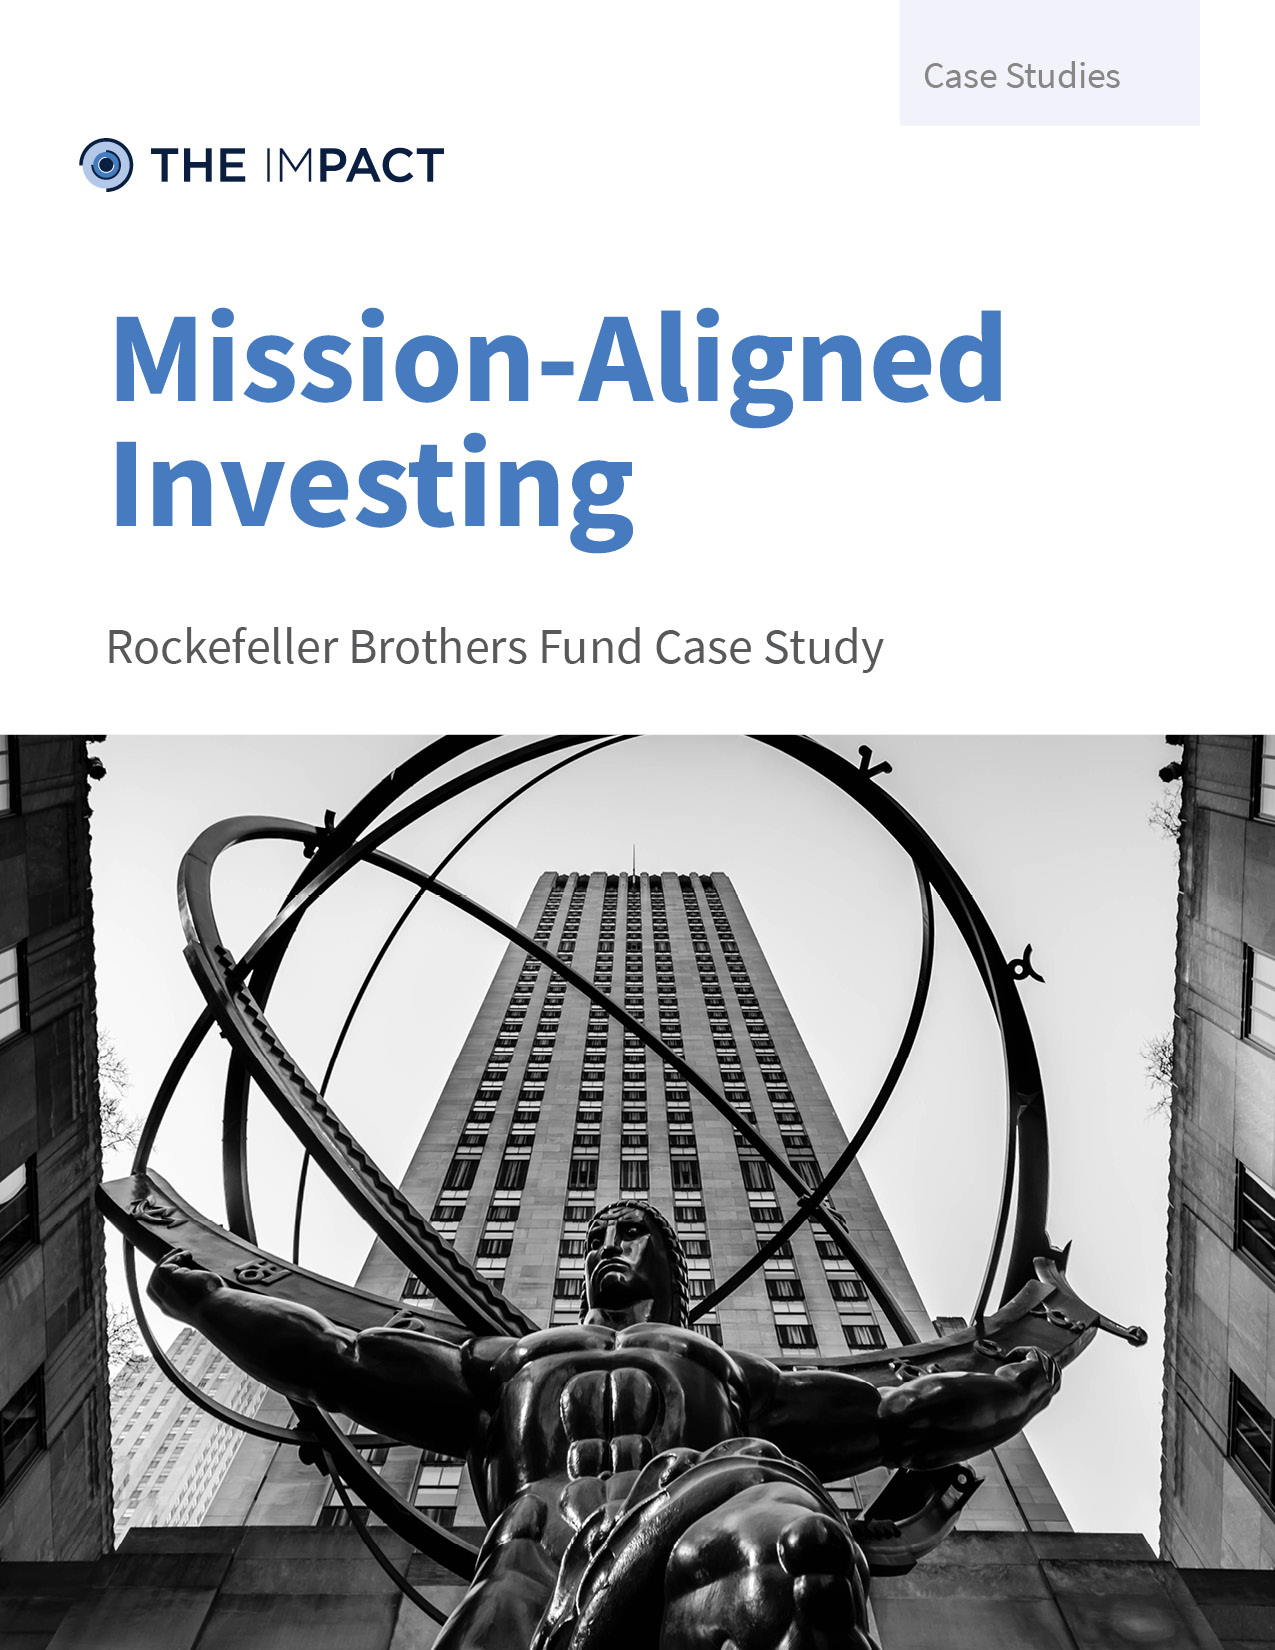 Mission-Aligned Investing. Rockefeller Brothers Fund case study by The ImPact.